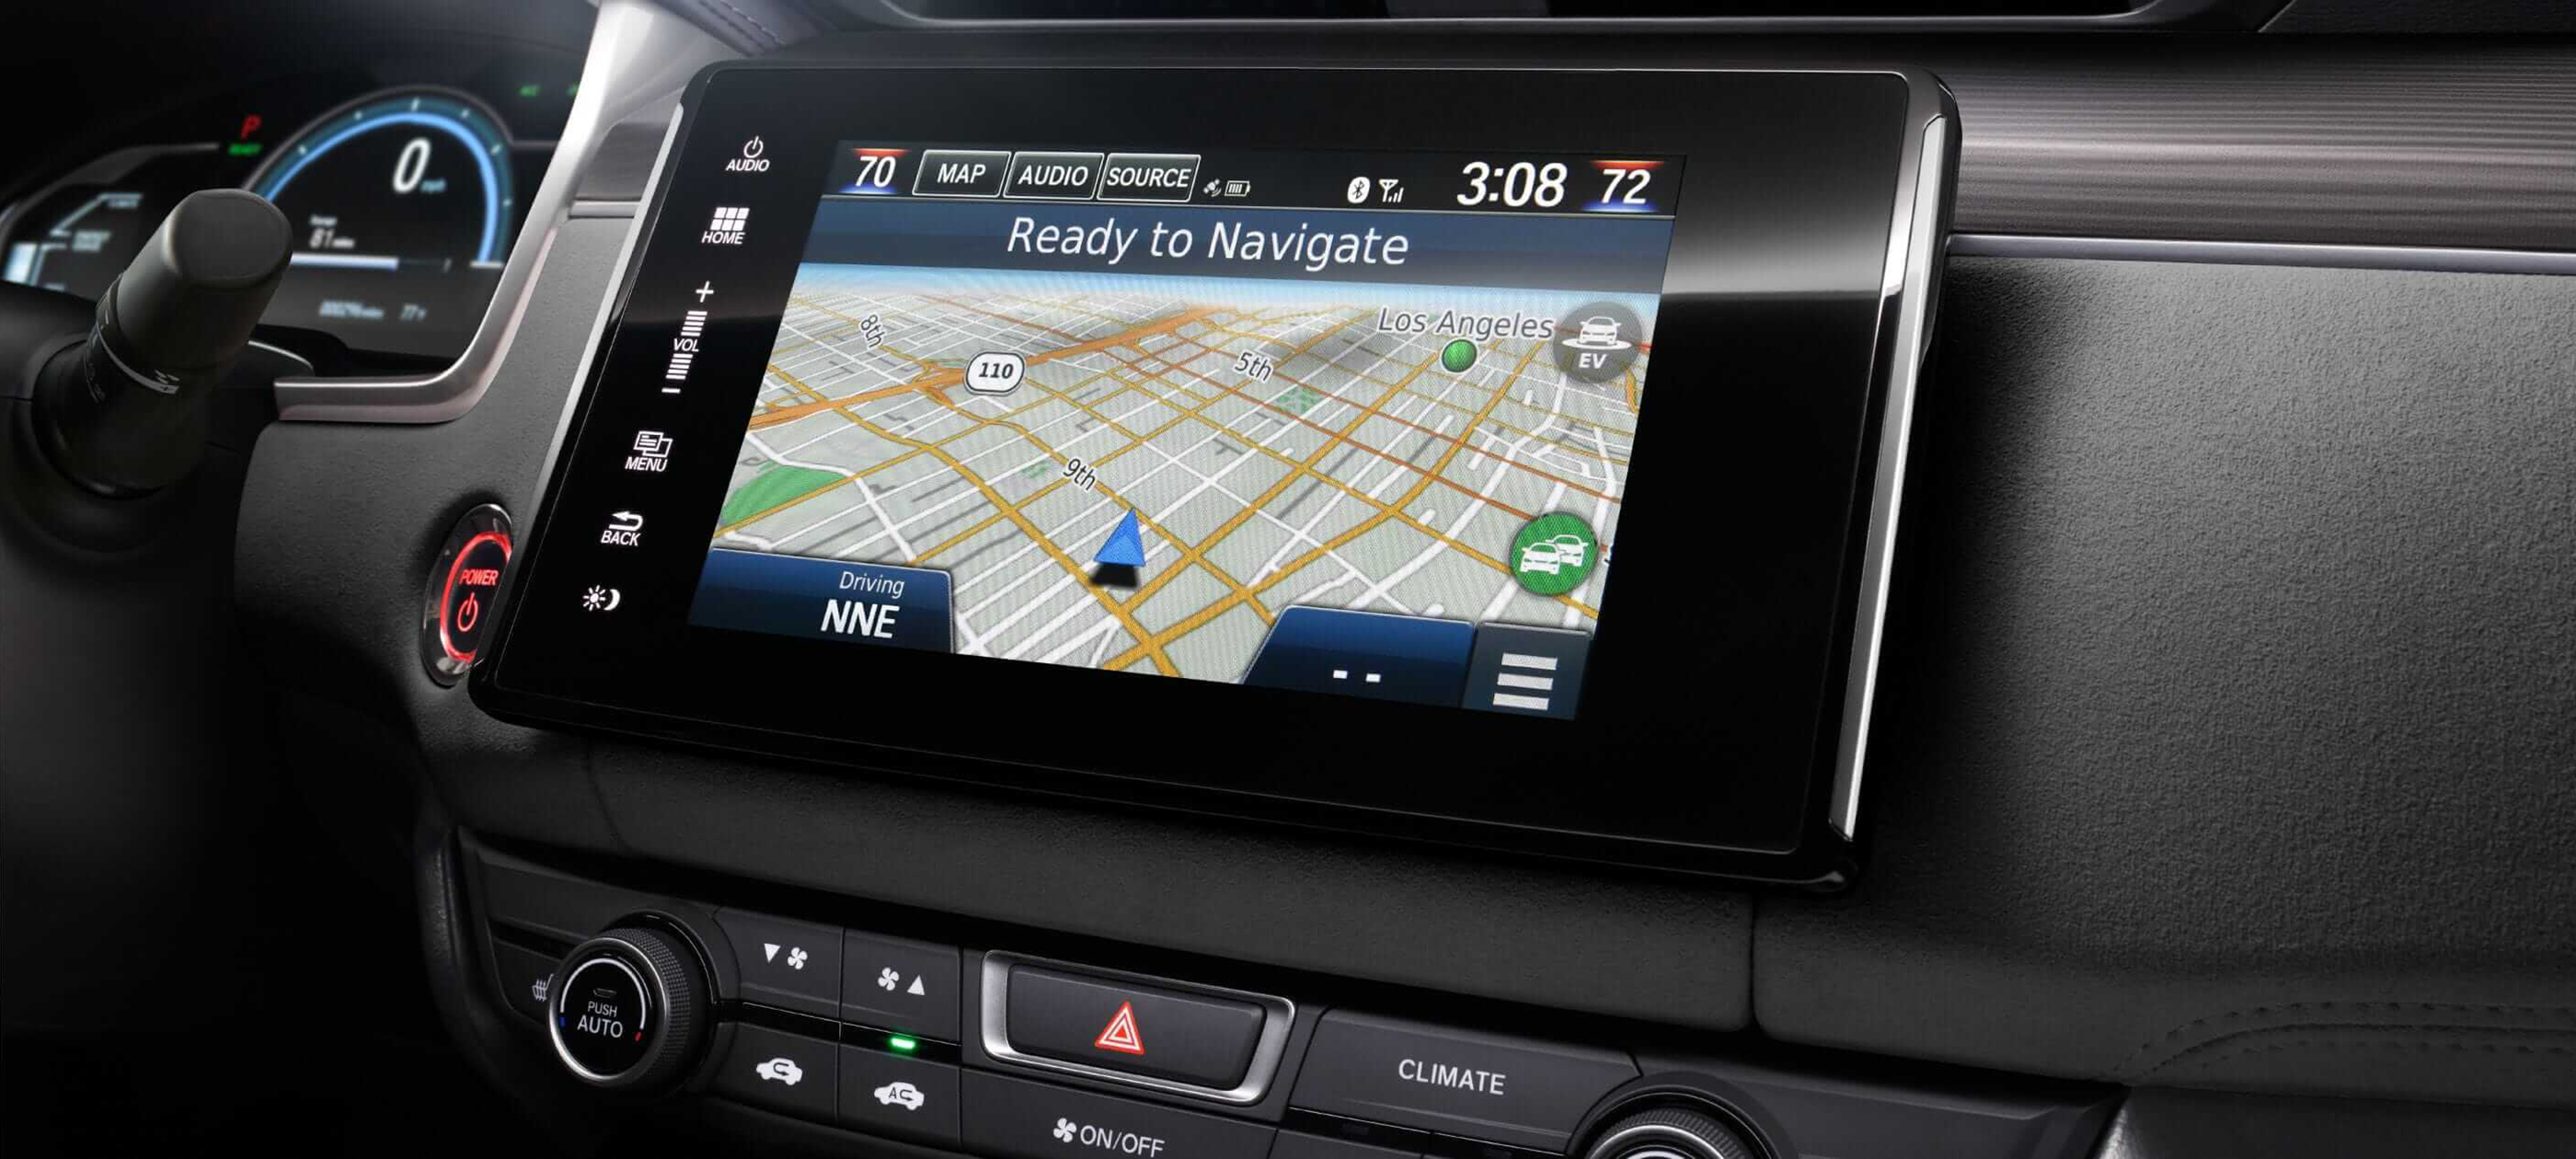 Honda Satellite-Linked Navigation System™